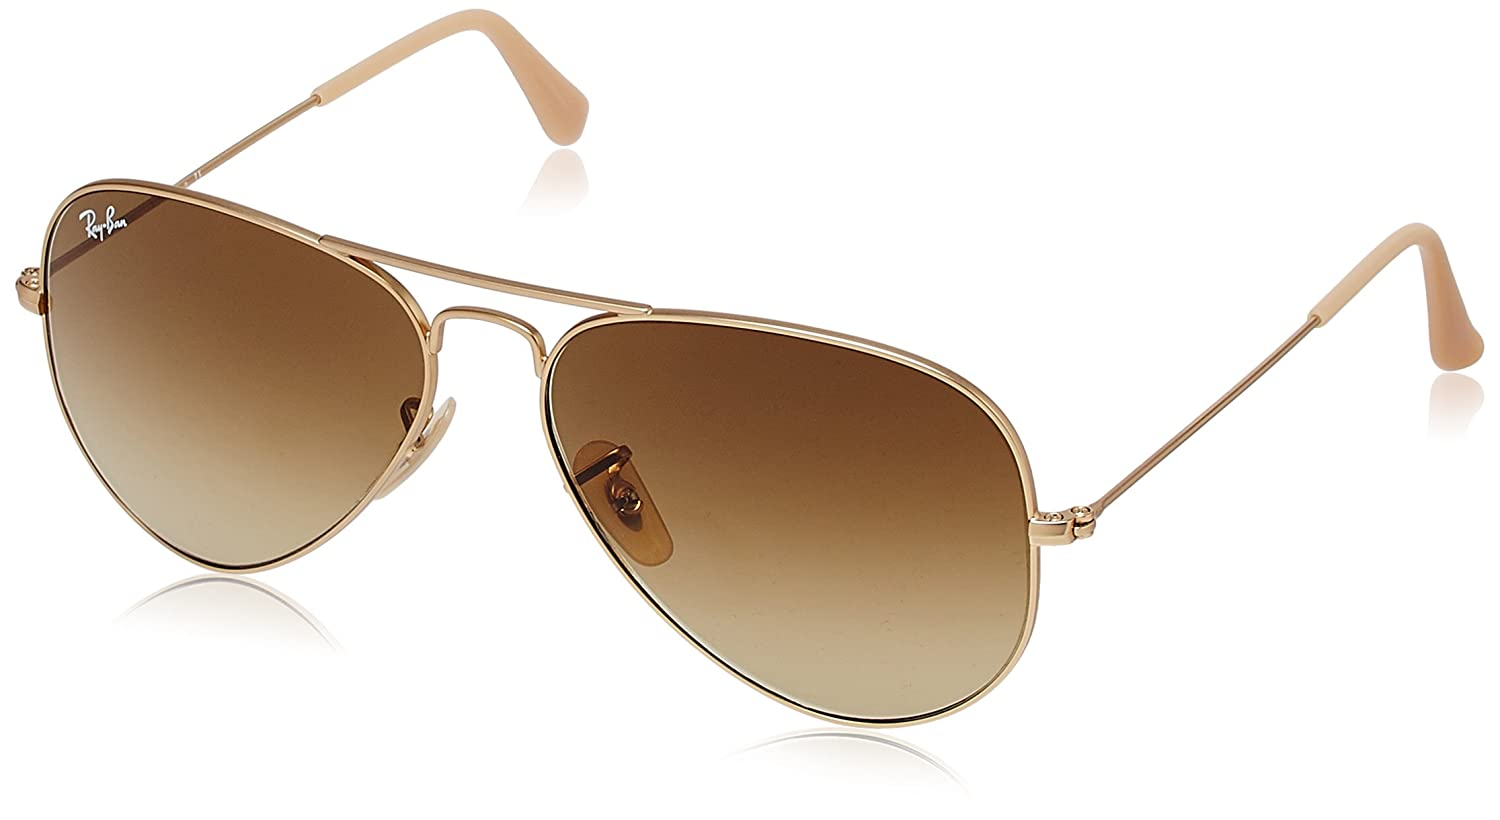 df839c08c2 Ray-Ban Aviator Unisex Sunglasses (0RB3025112 8558 Brown)  Amazon.in   Clothing   Accessories